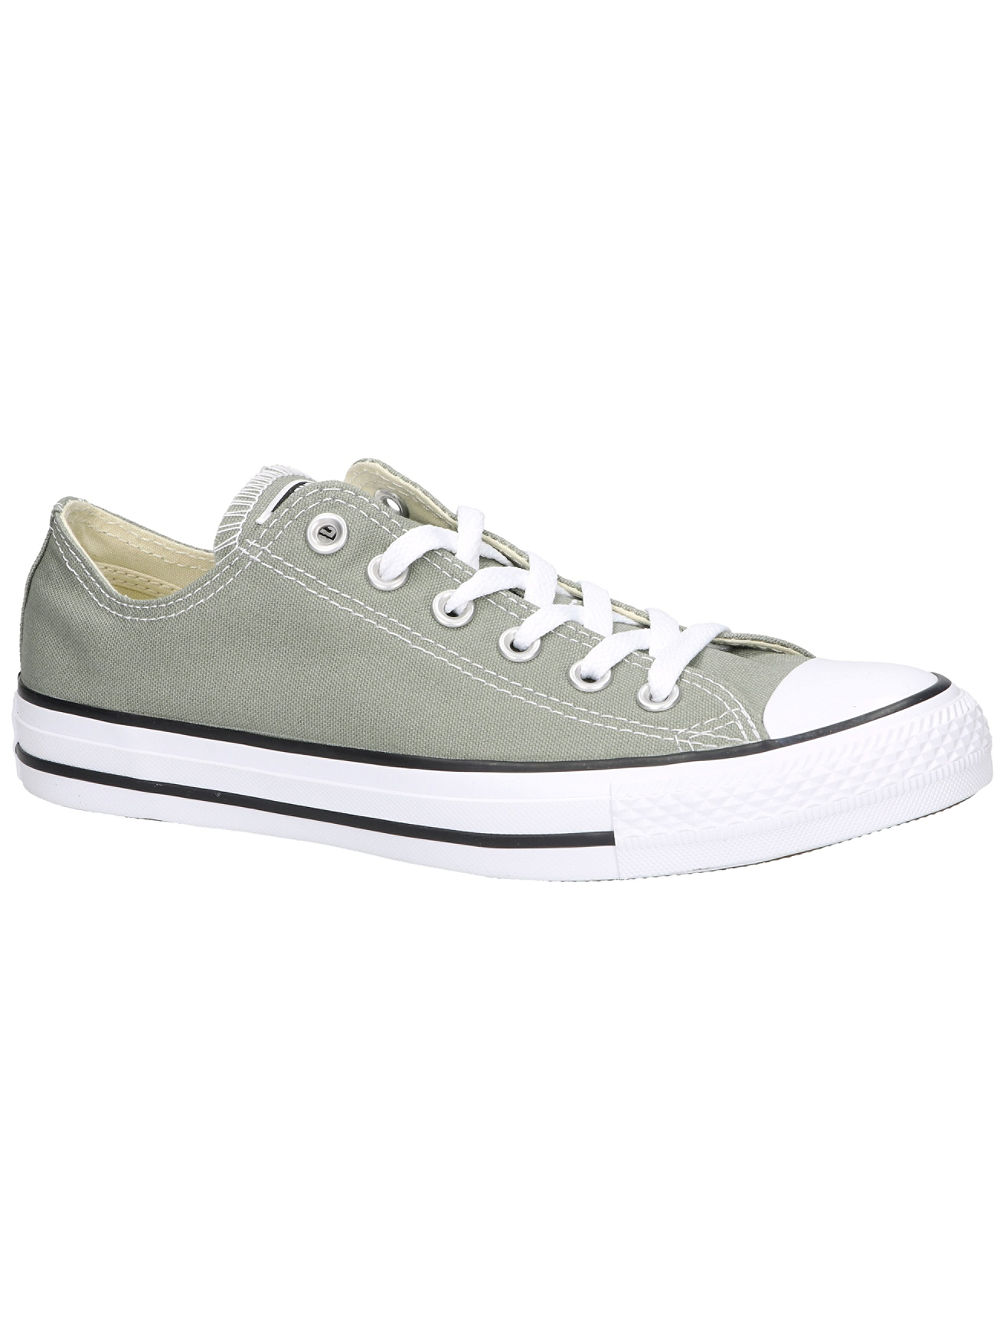 2109f04bafcc Buy Converse Chuck Taylor All Star Sneakers online at Blue Tomato